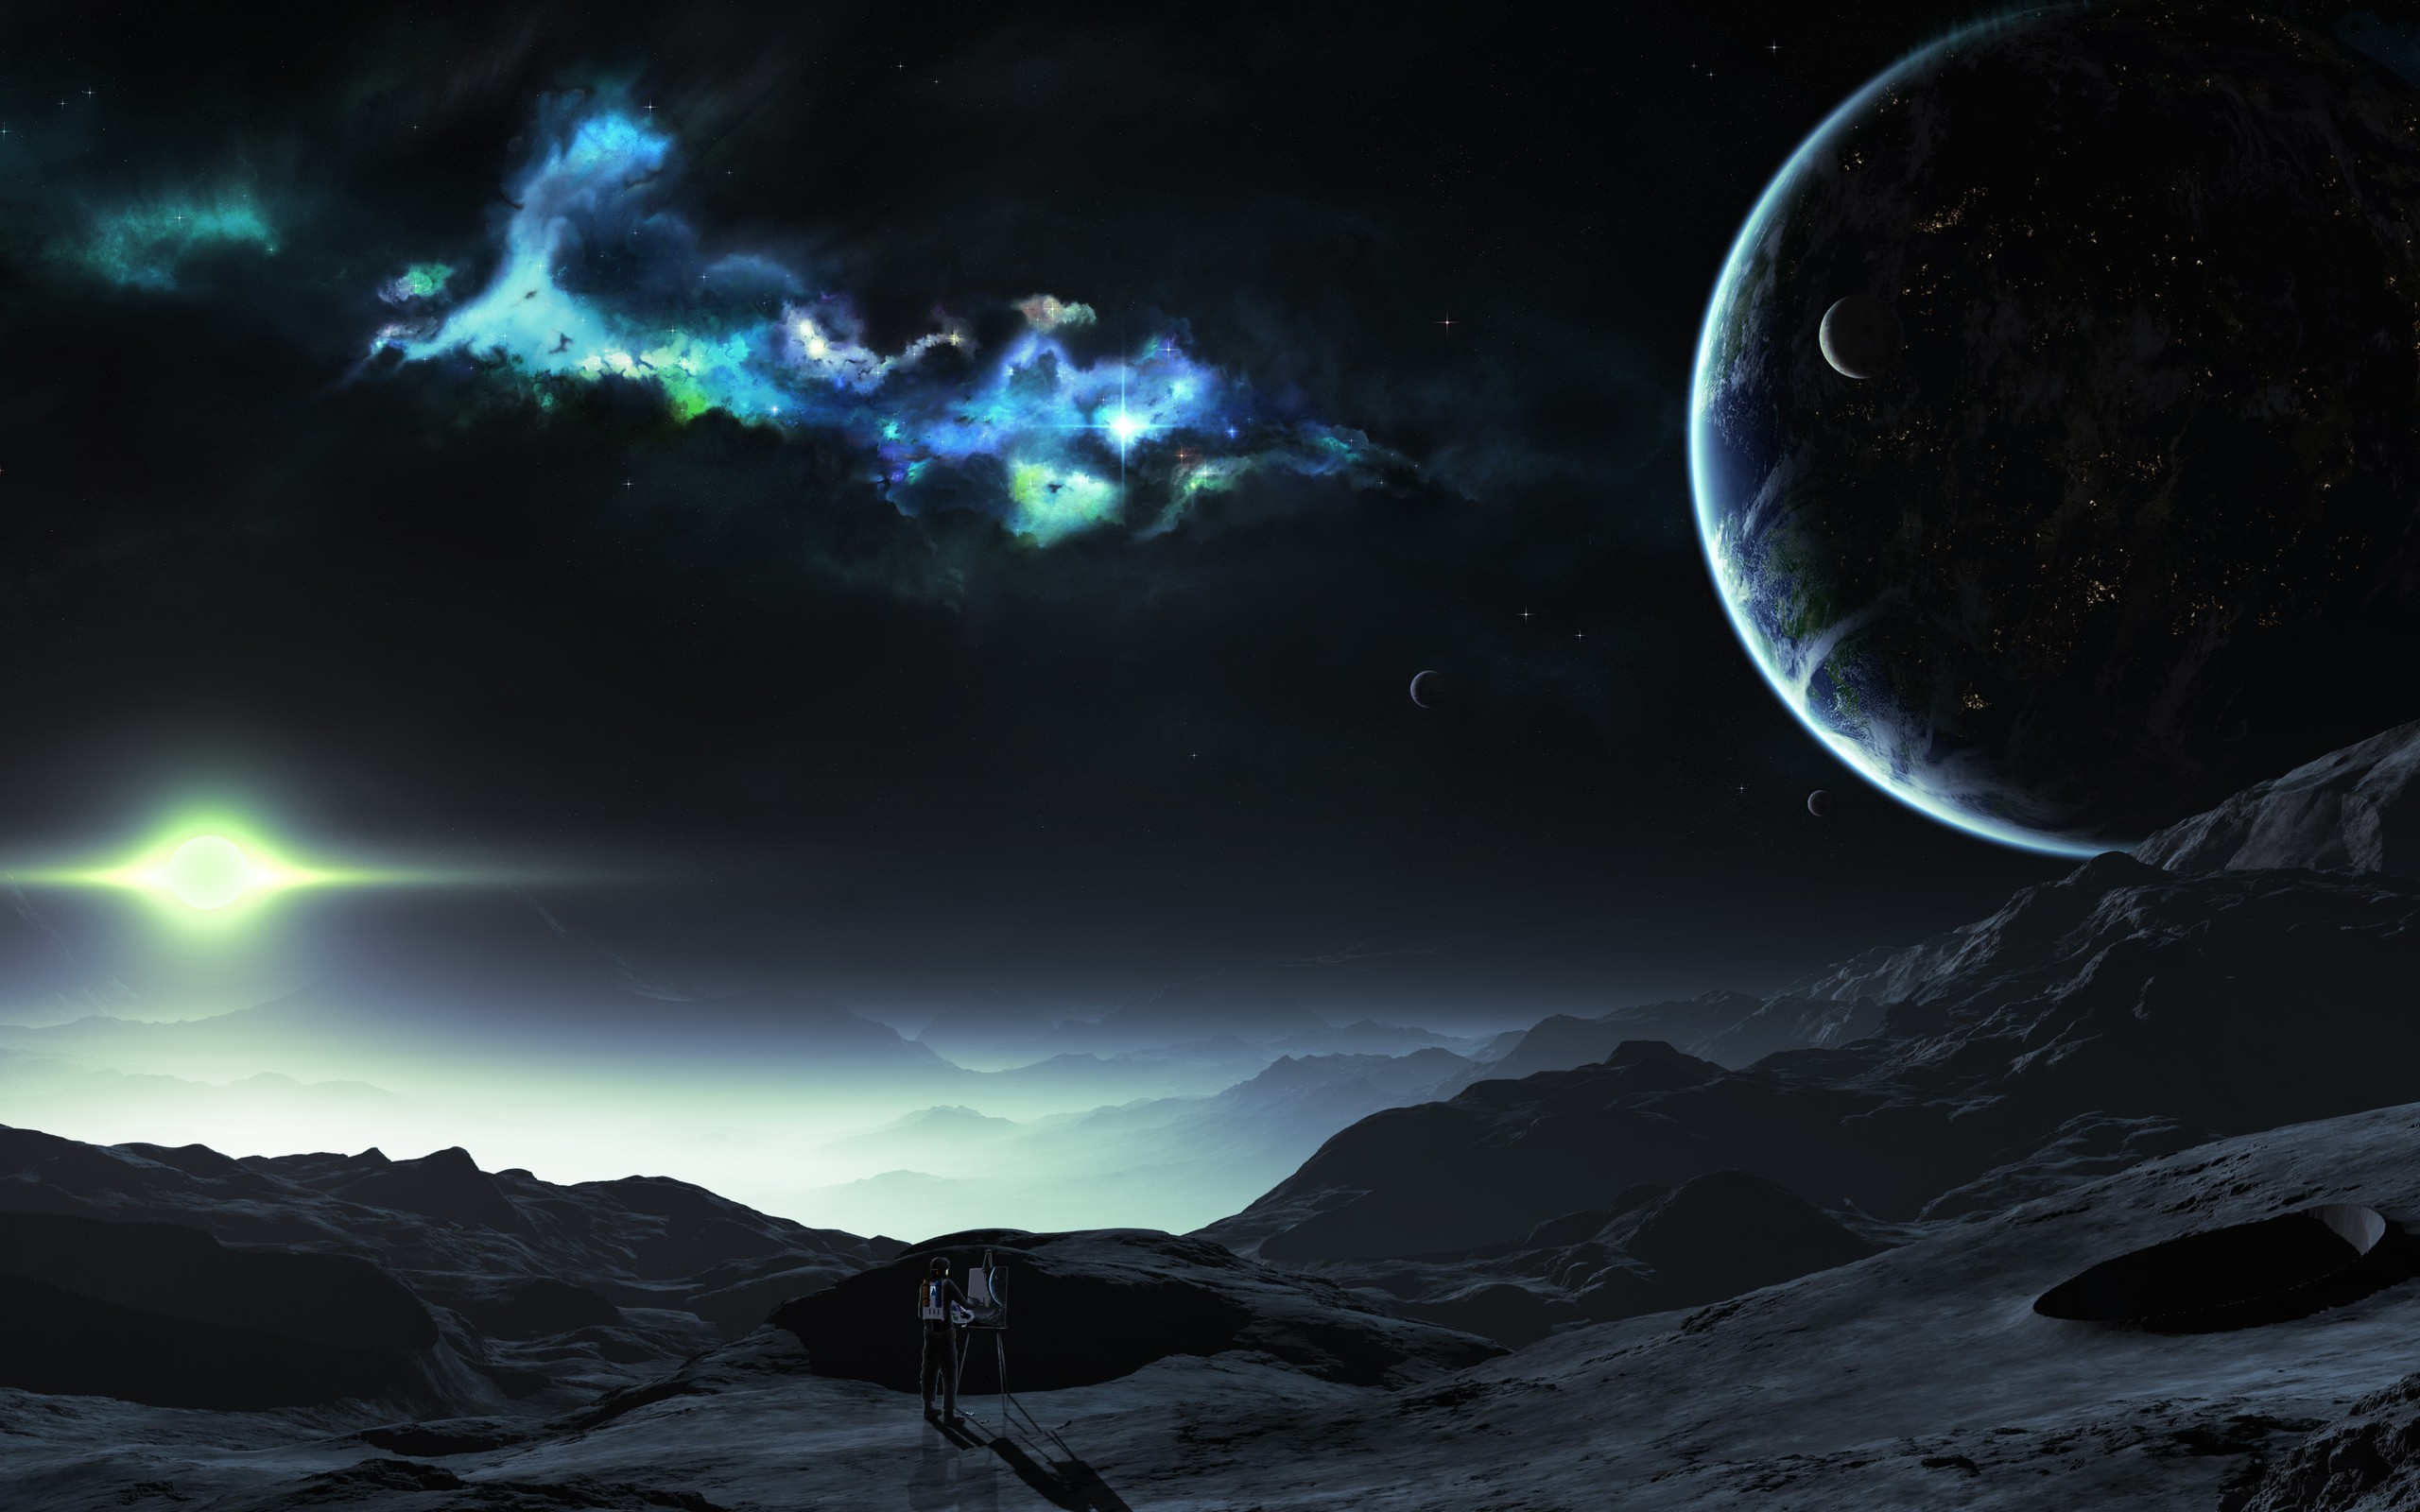 outer-space-planets-artwork-HD-Wallpaper